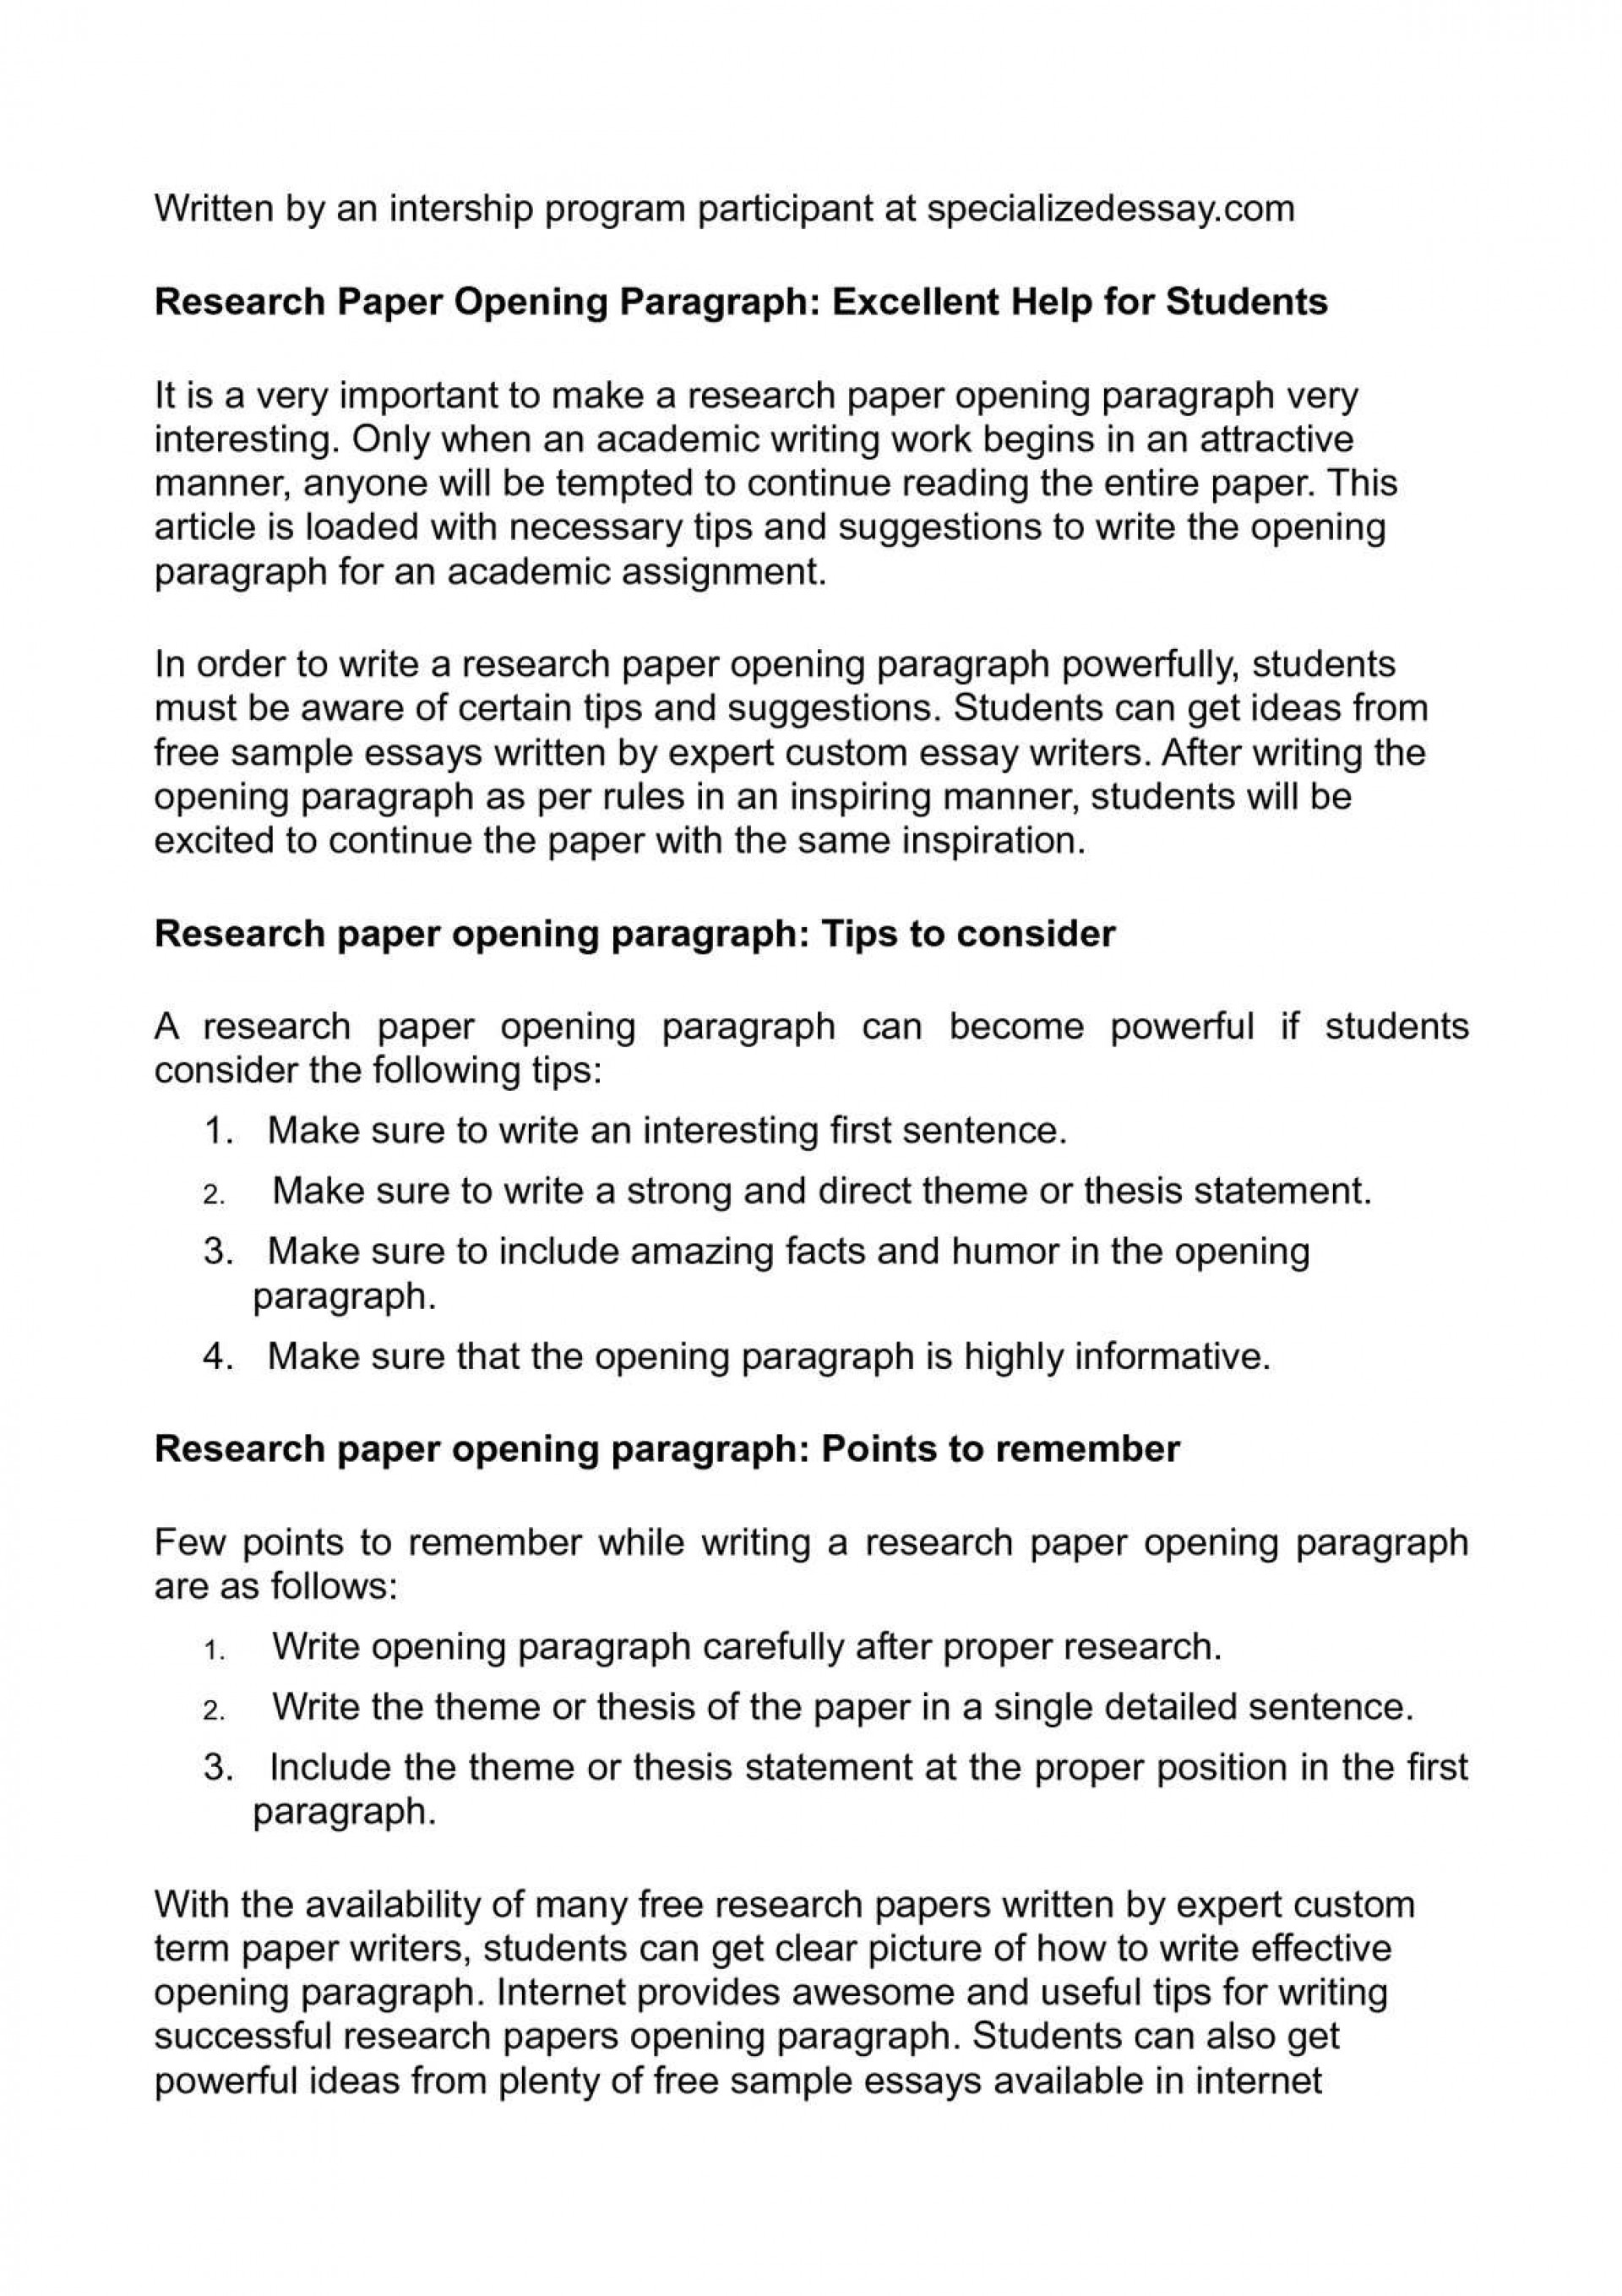 004 P1 Research Paper Good Introduction Sentences Rare For Paragraph A How To Write Conclusion Introductory 1920